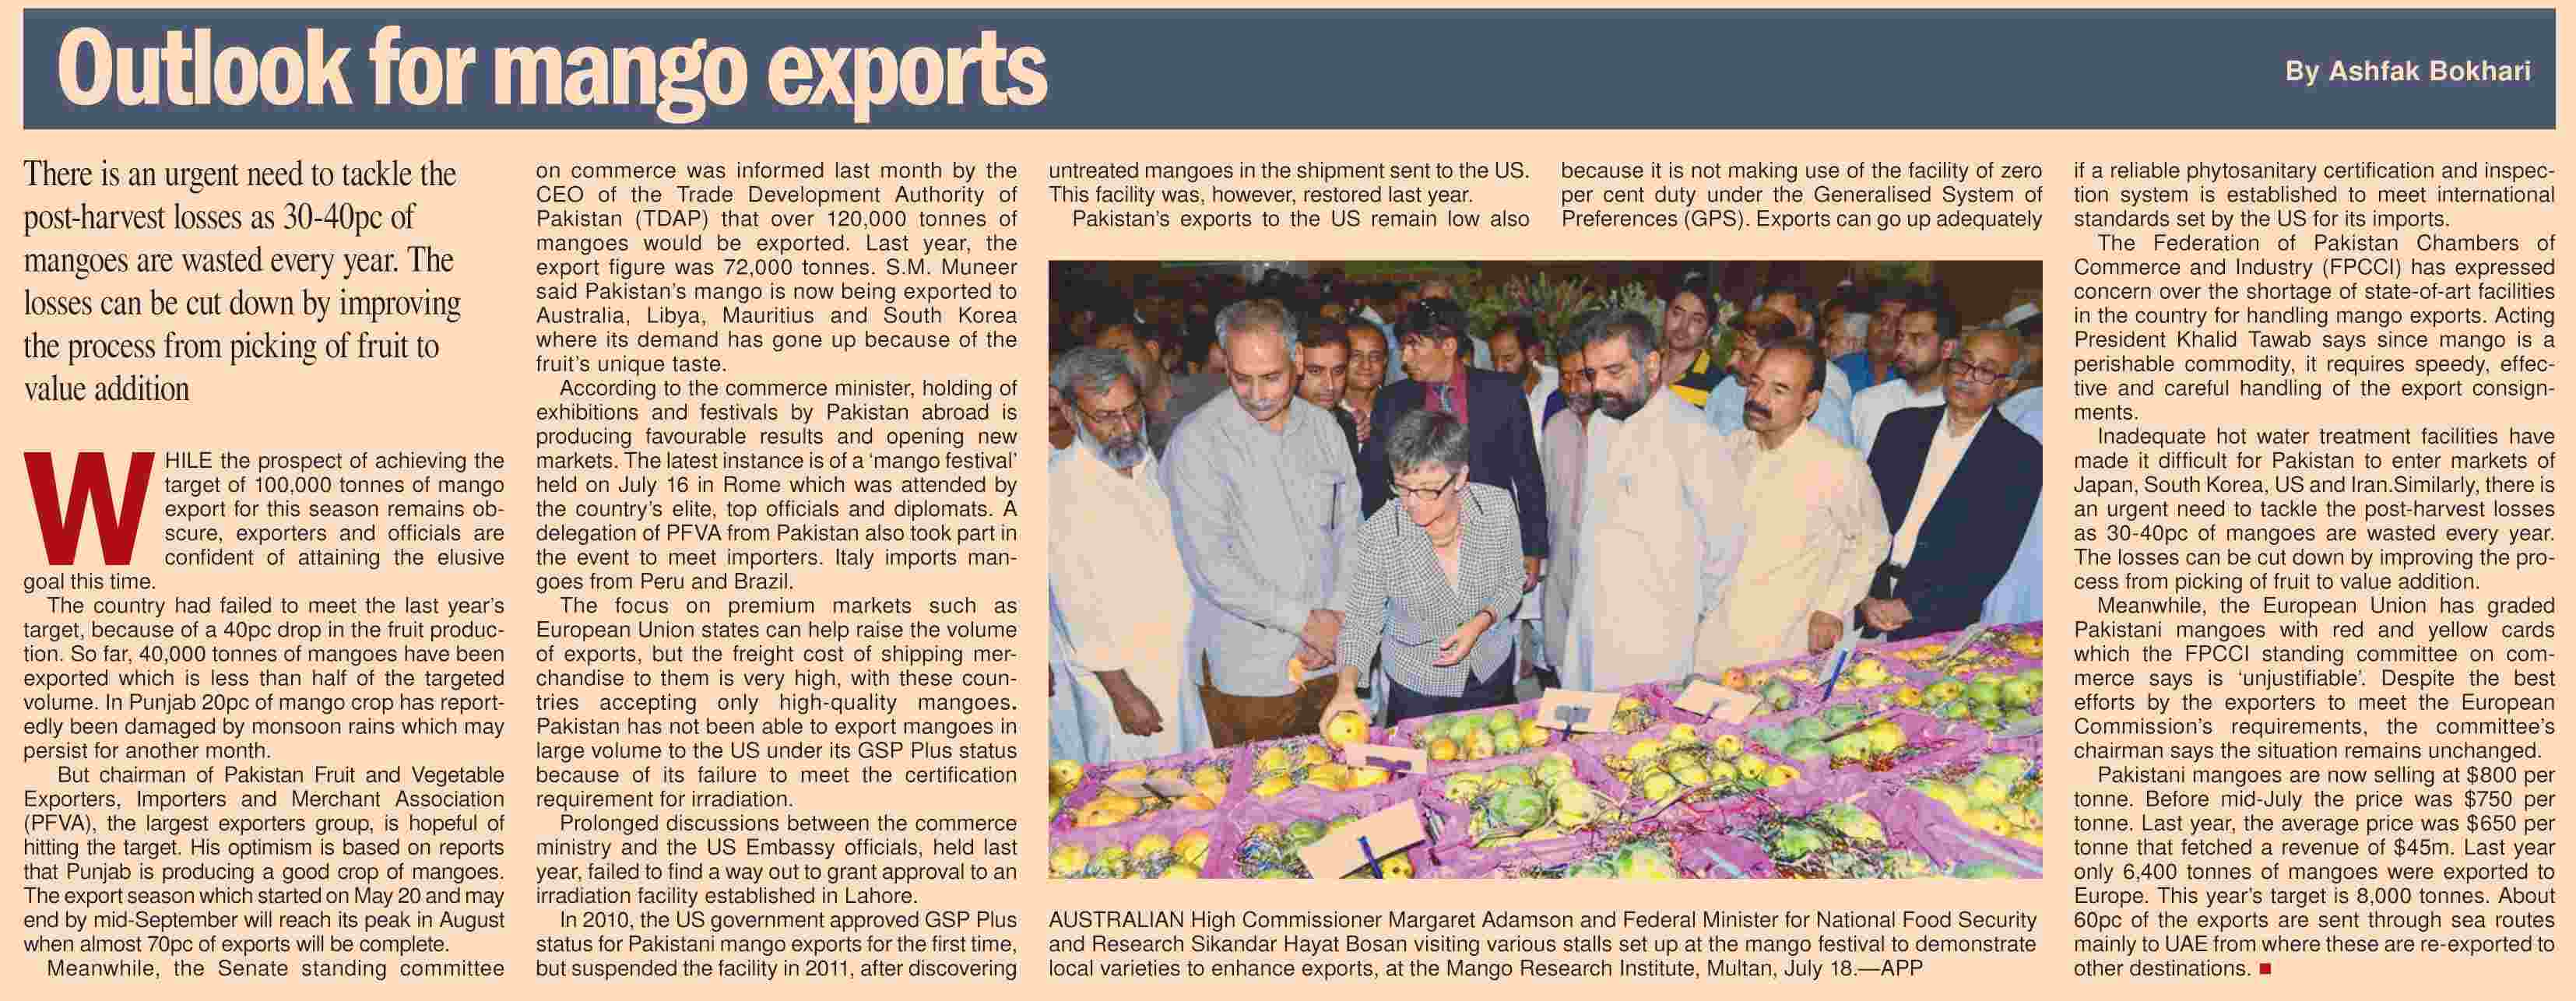 Mango Production Exports From Pakistan Post Harvest Losses